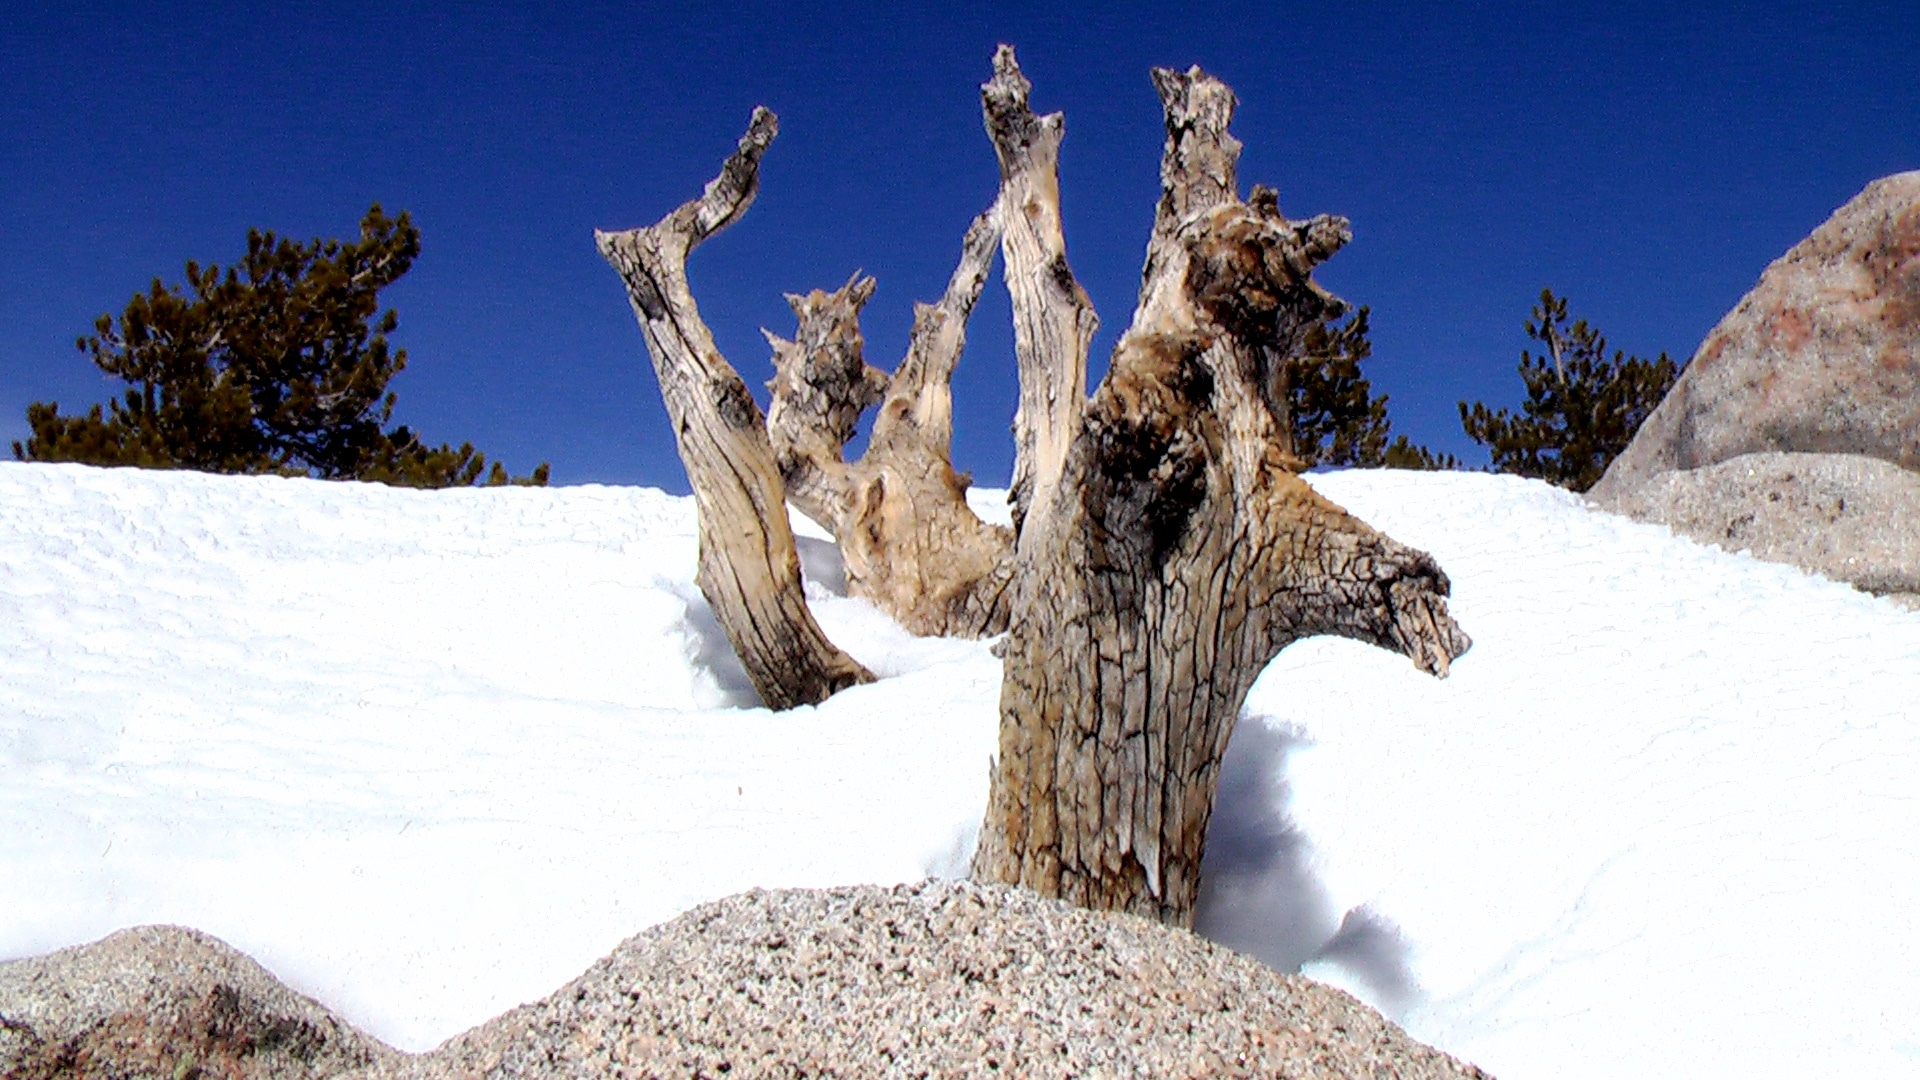 A tree stub surrounded by lots of snow in Palm Springs, California